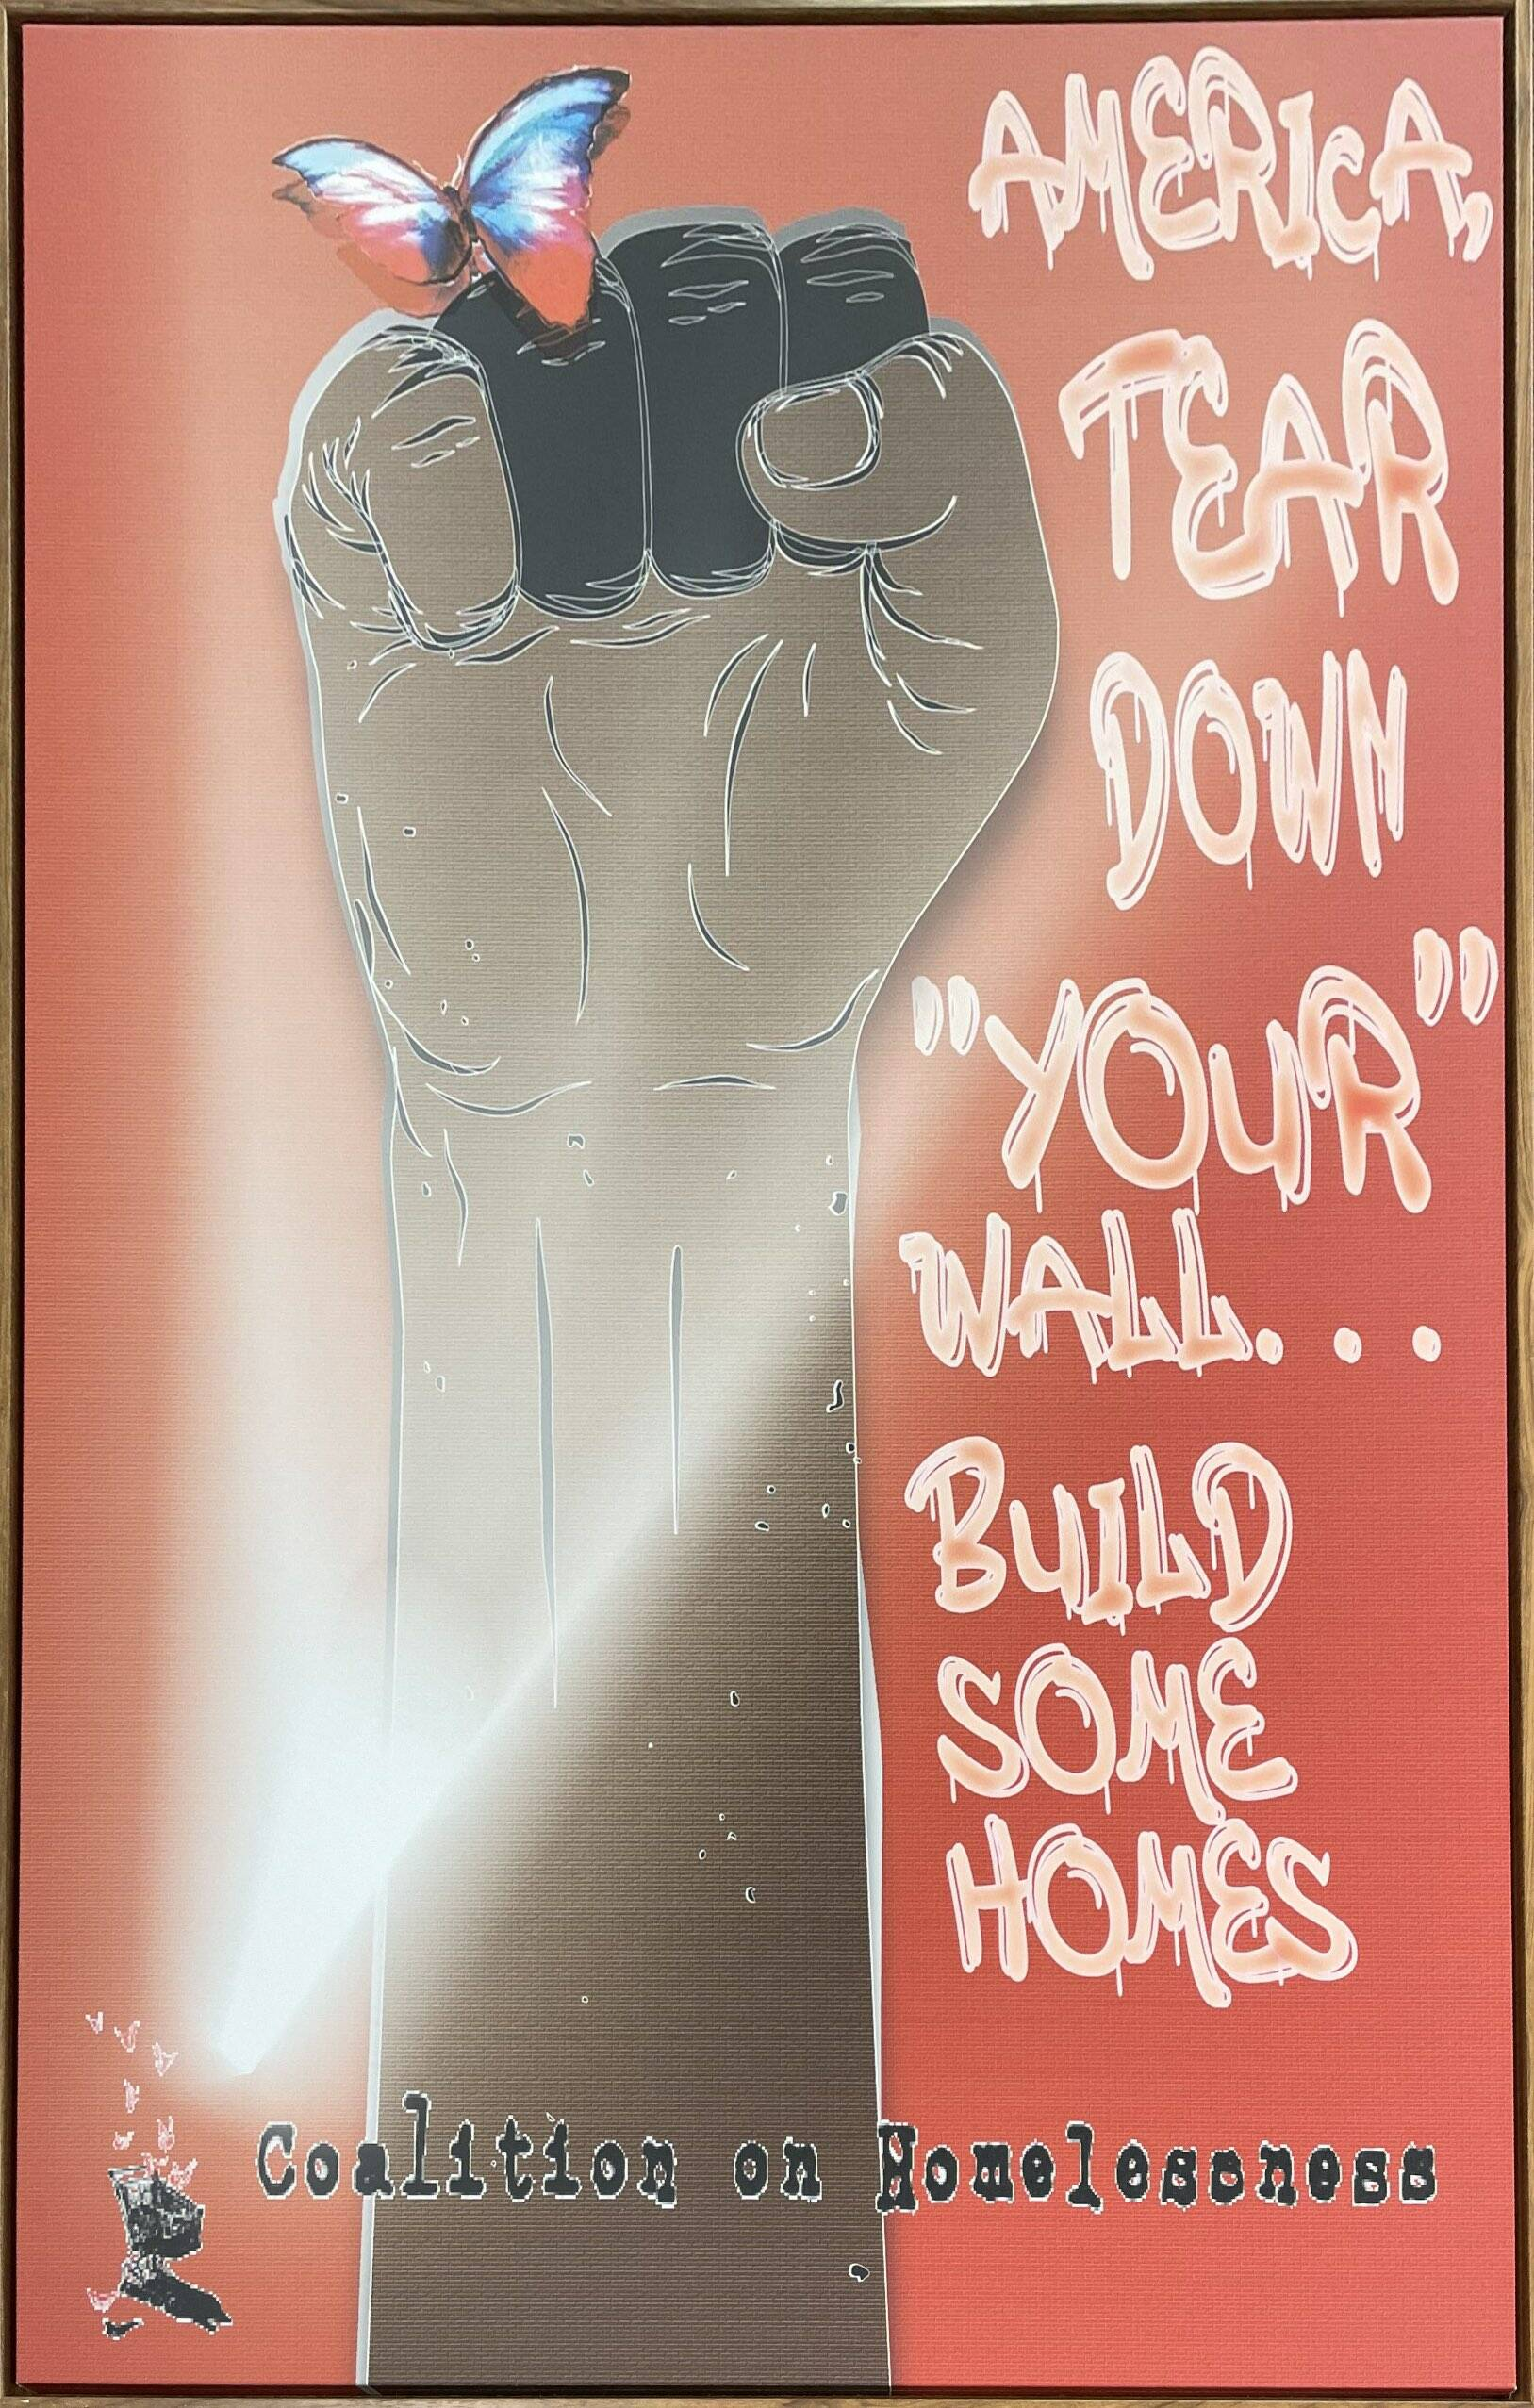 """Ramsey Dunlap's artwork, """"America, Tear Down 'Your' Wall,"""" is up for auction starting Sept. 9. (Courtesy SF Coalition on Homelessness)"""